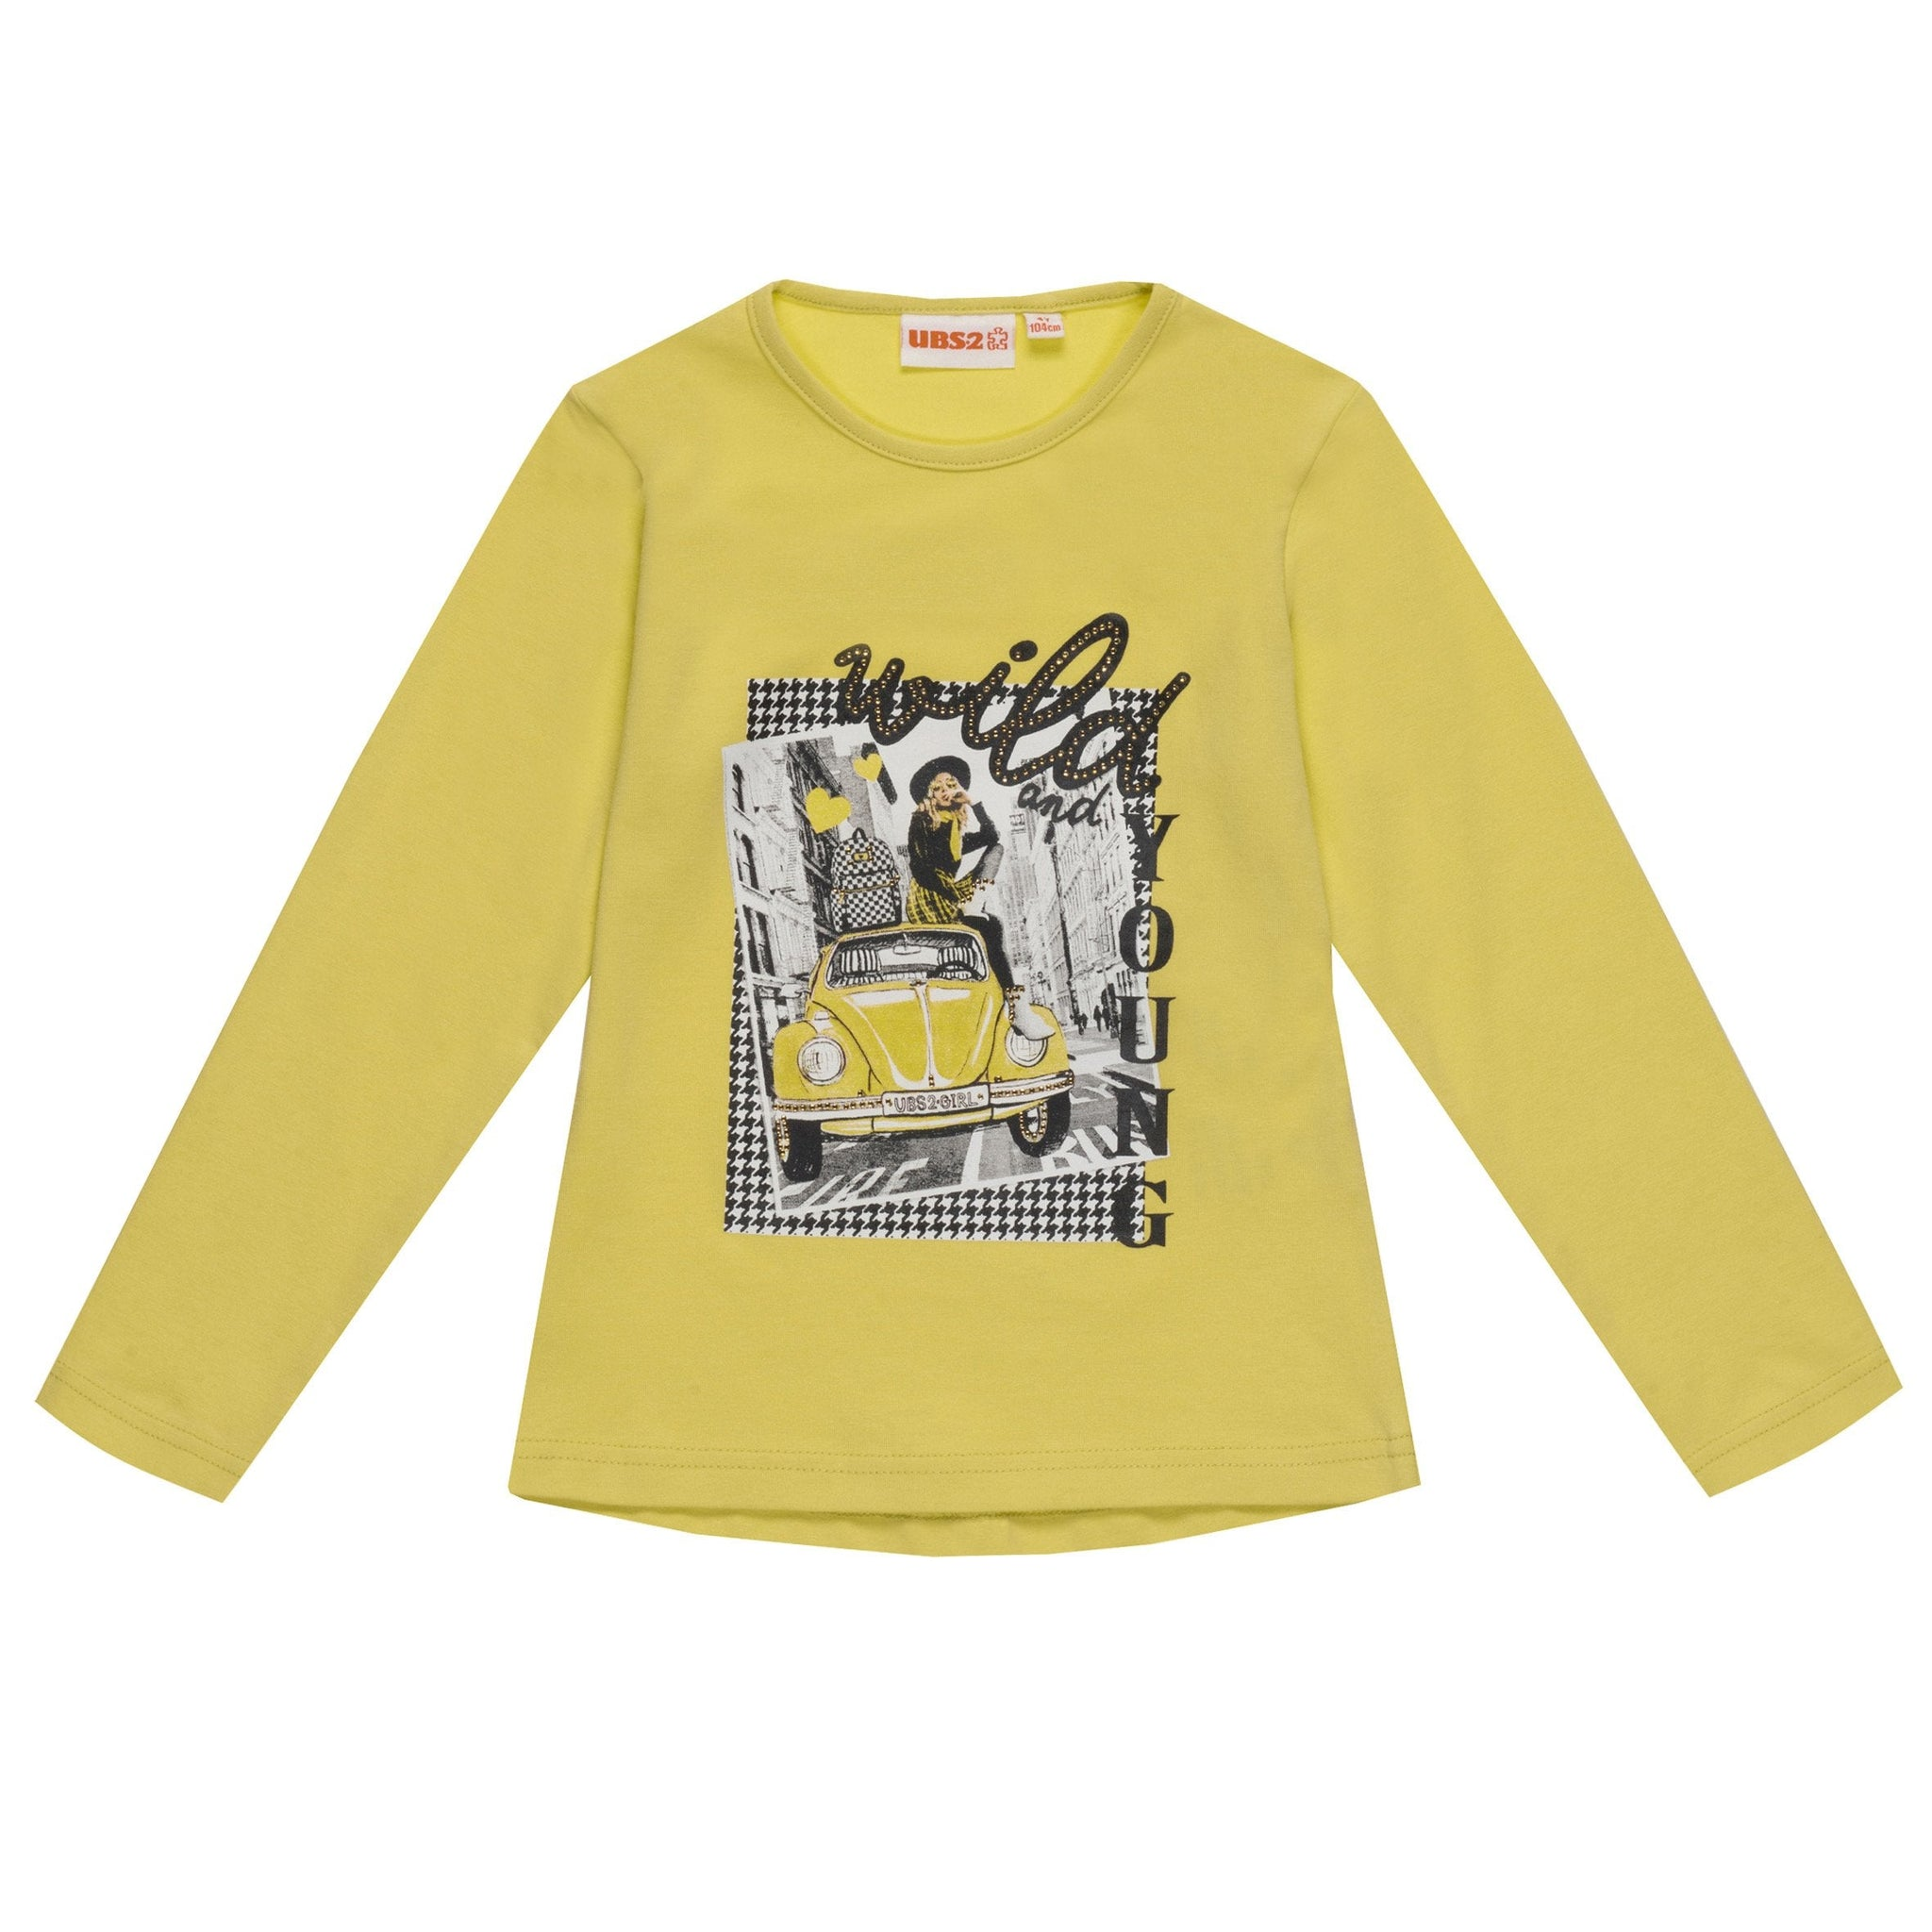 Ubs2 Girls Lime Green Long Sleeve Top Funky Kids - Magherafelt